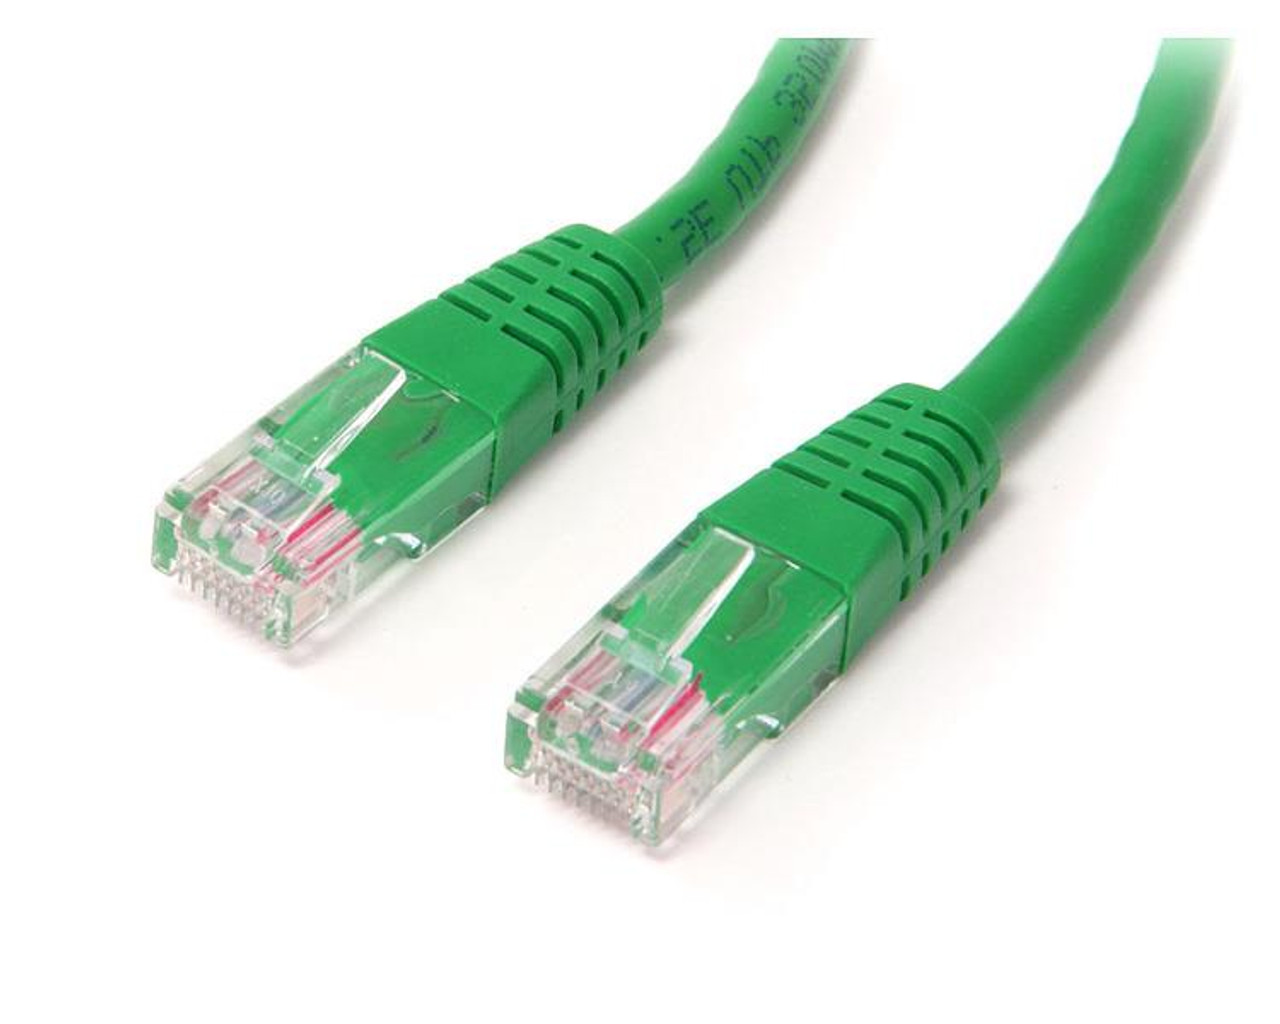 Image for StarTech 15m Cat5e Green Molded RJ45 UTP Cat 5e Patch Cable Cord 15 m CX Computer Superstore